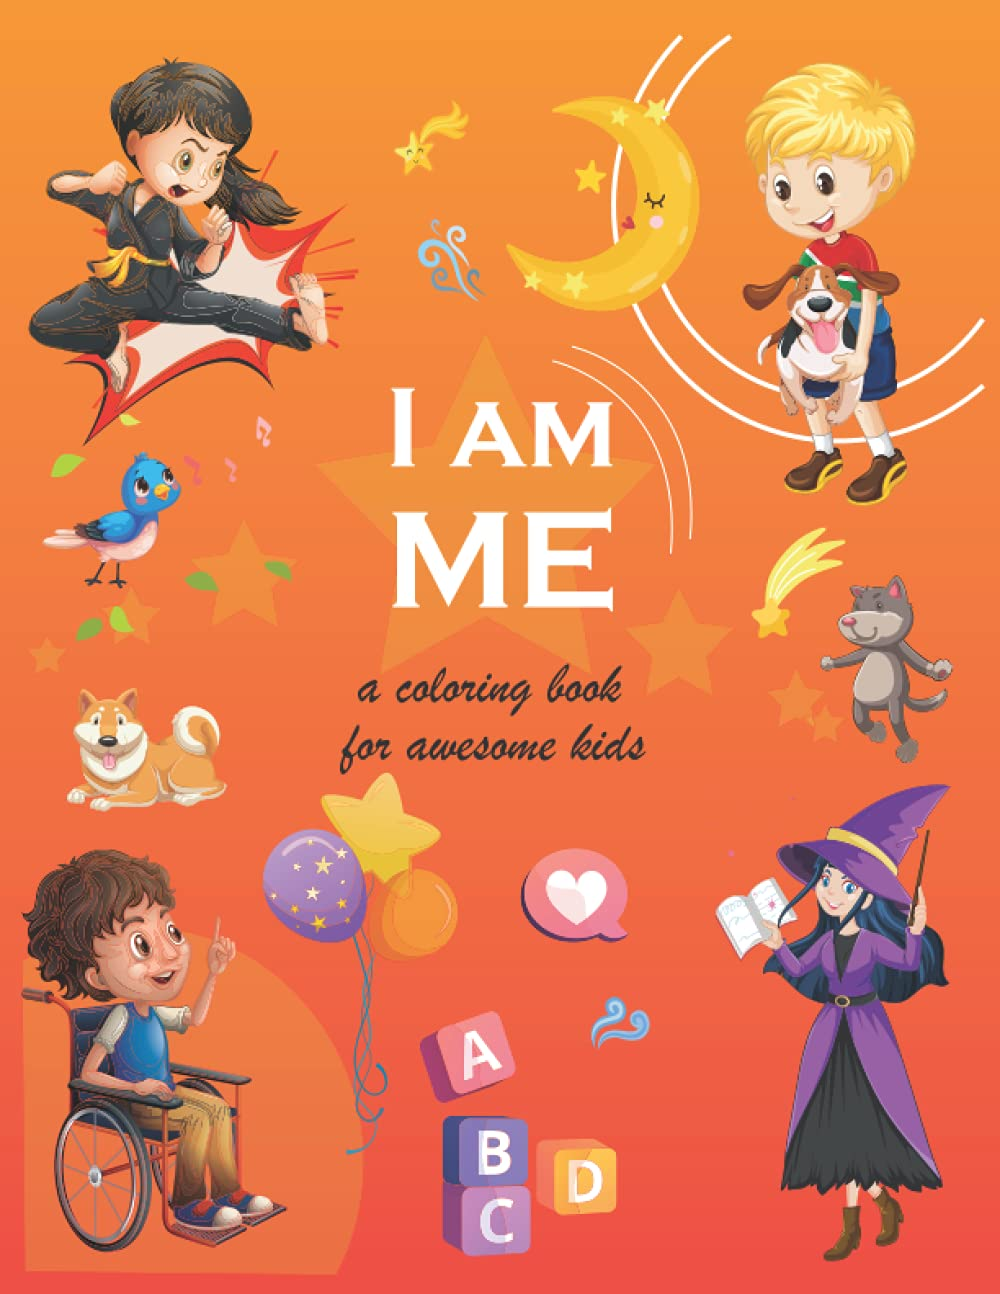 I AM ME: A Coloring Book for Awesome Kids